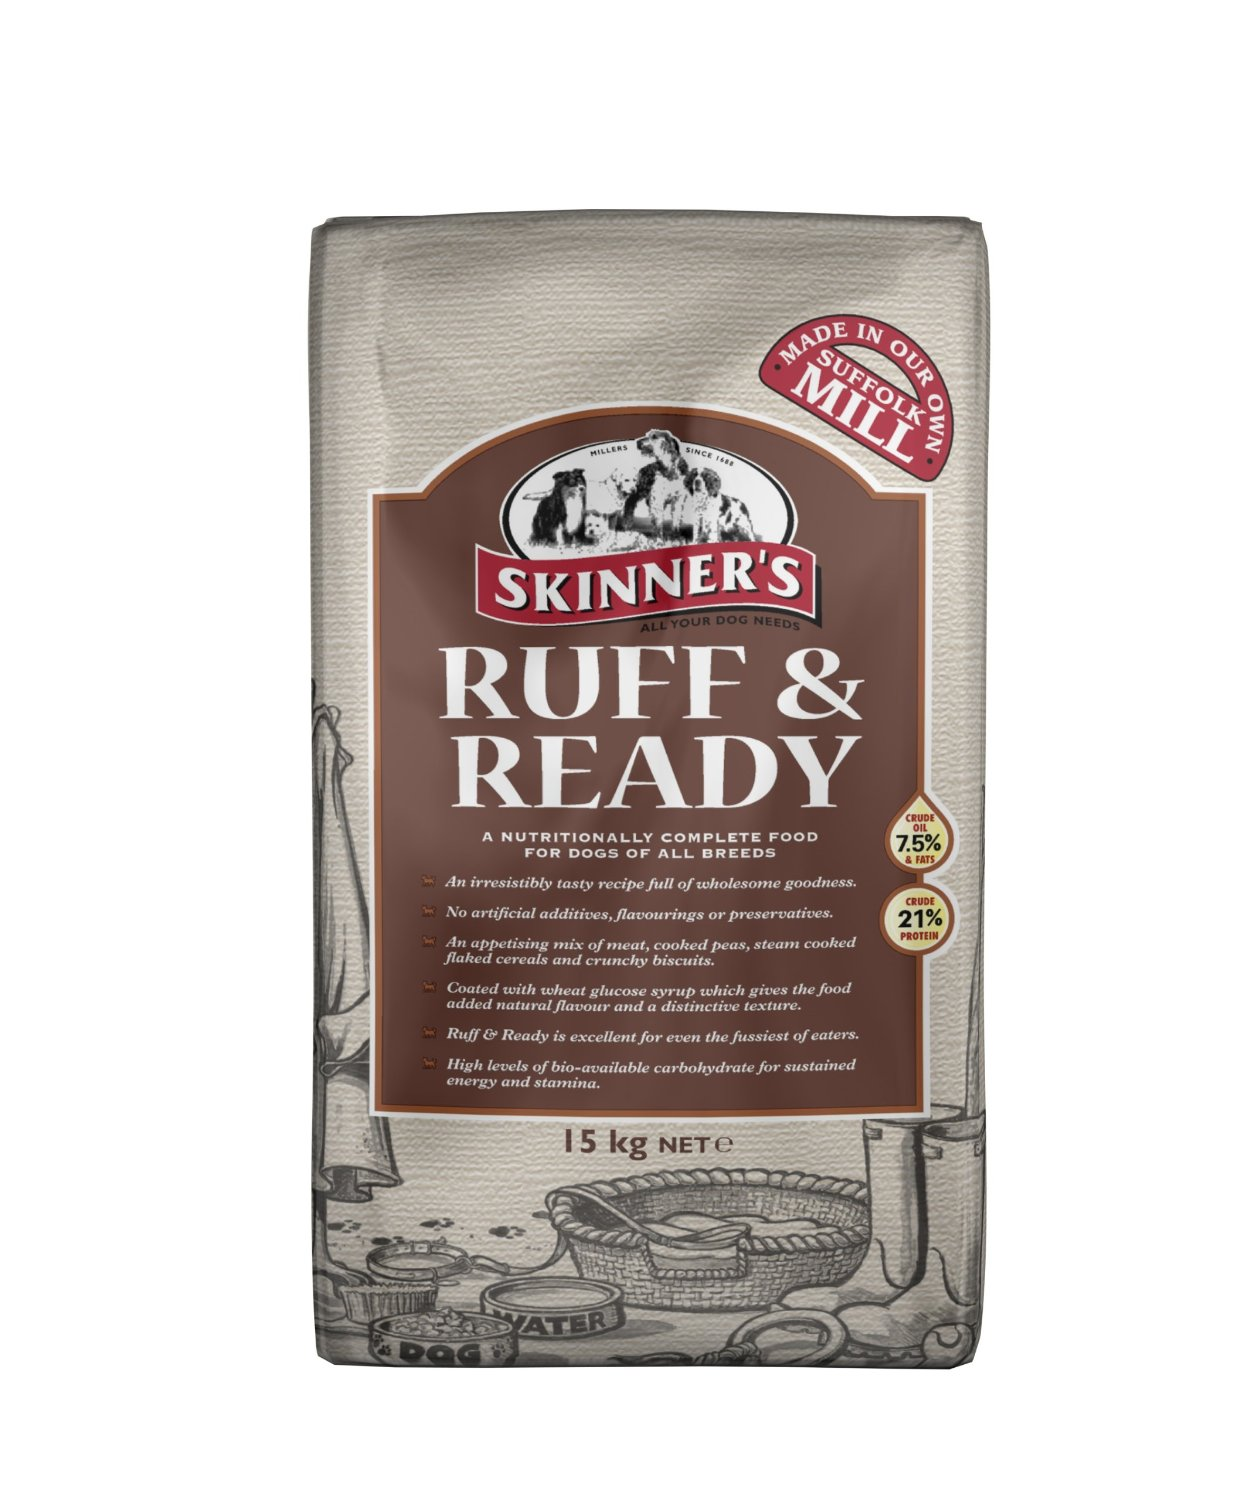 Skinner's Ruff & Ready Dog Food